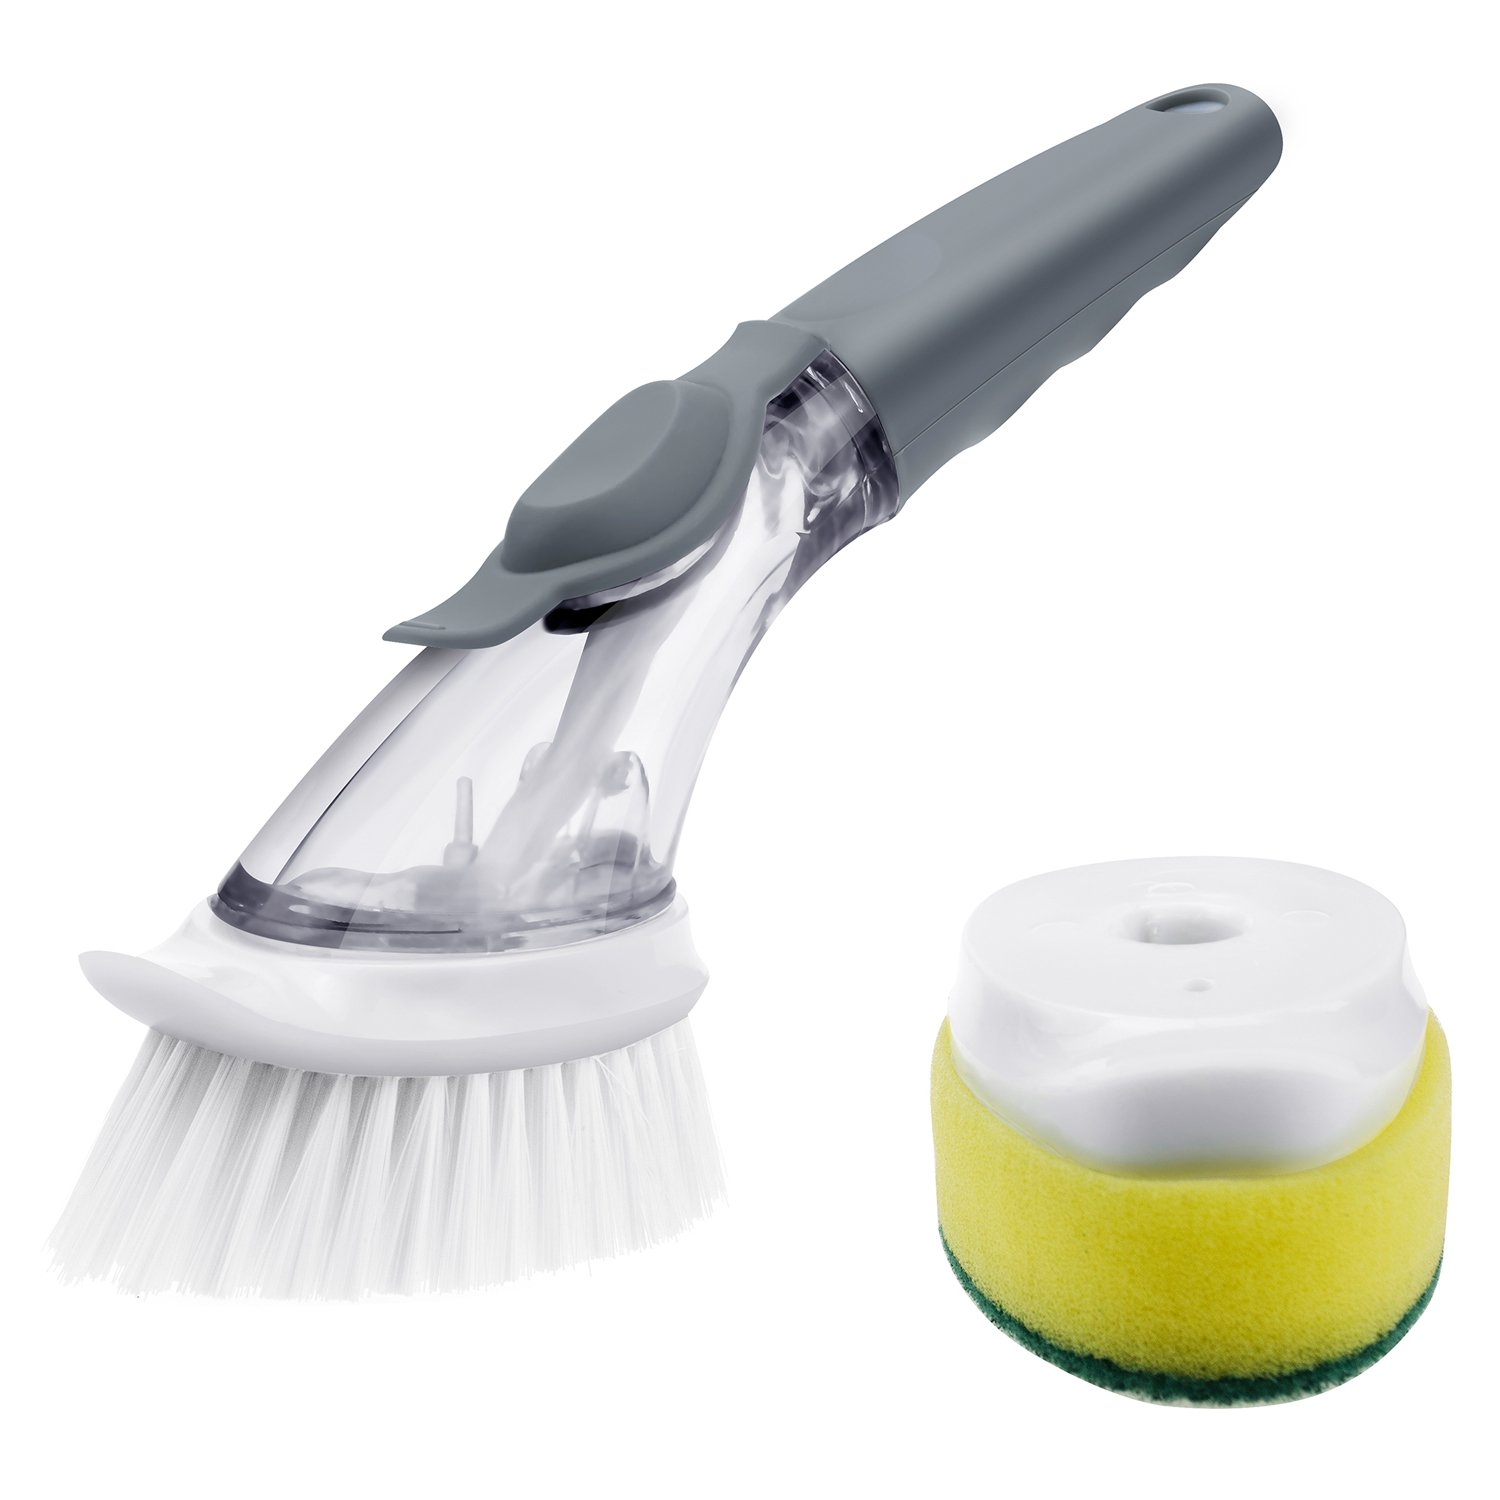 FRMARCH Good Grips Soap Dispensing Dish Brush and Sponge Set -Bowl Pot Pan scrubber with handle Nylon Cleaning Cleaner Scrub Brush Dish Wand for Kitchen (Gray)